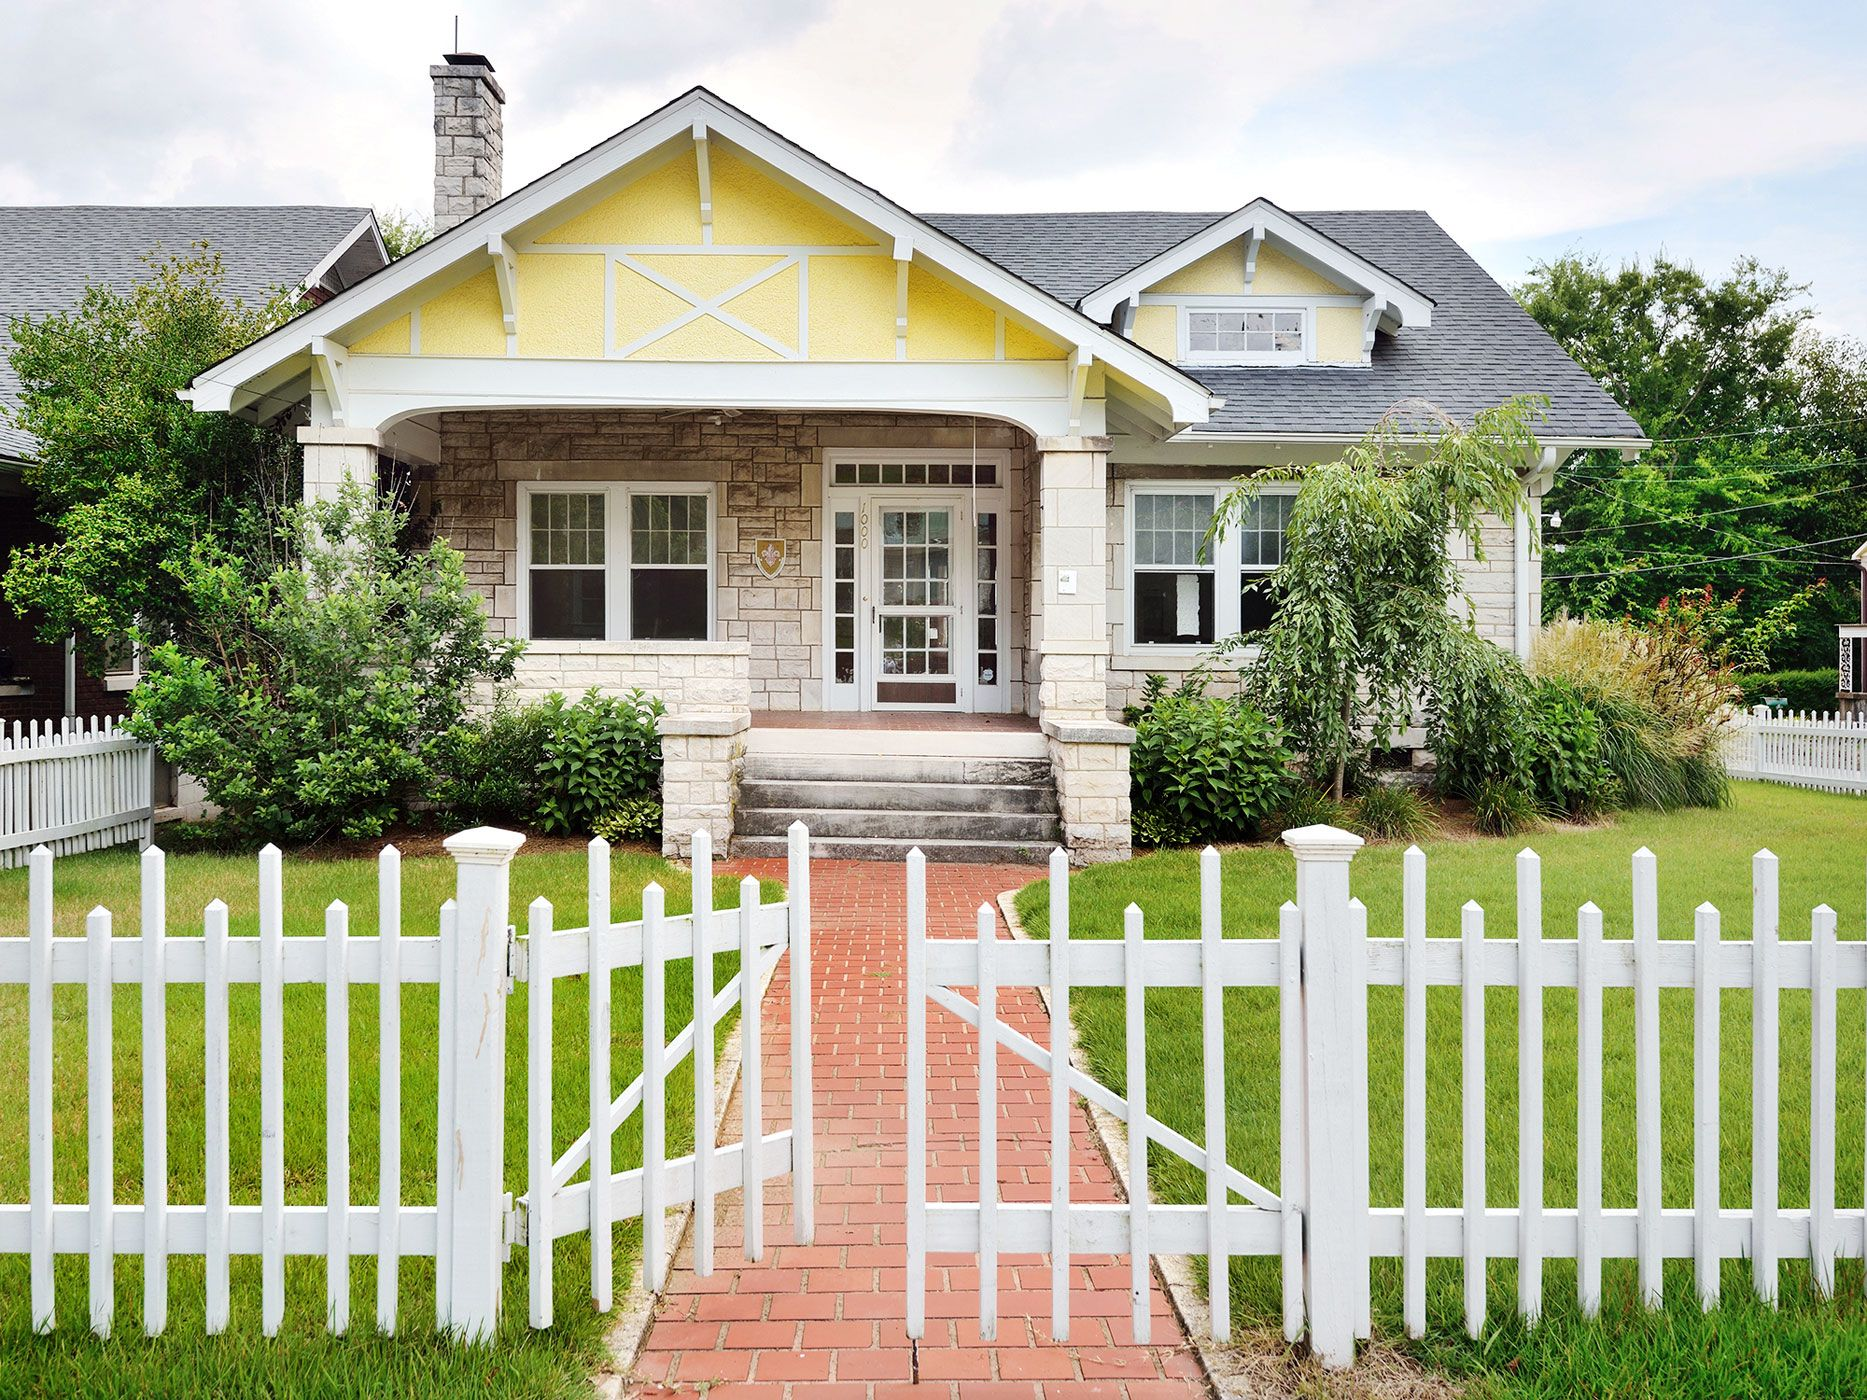 6 Quaint Houses For With White Picket Fences Historic Homes